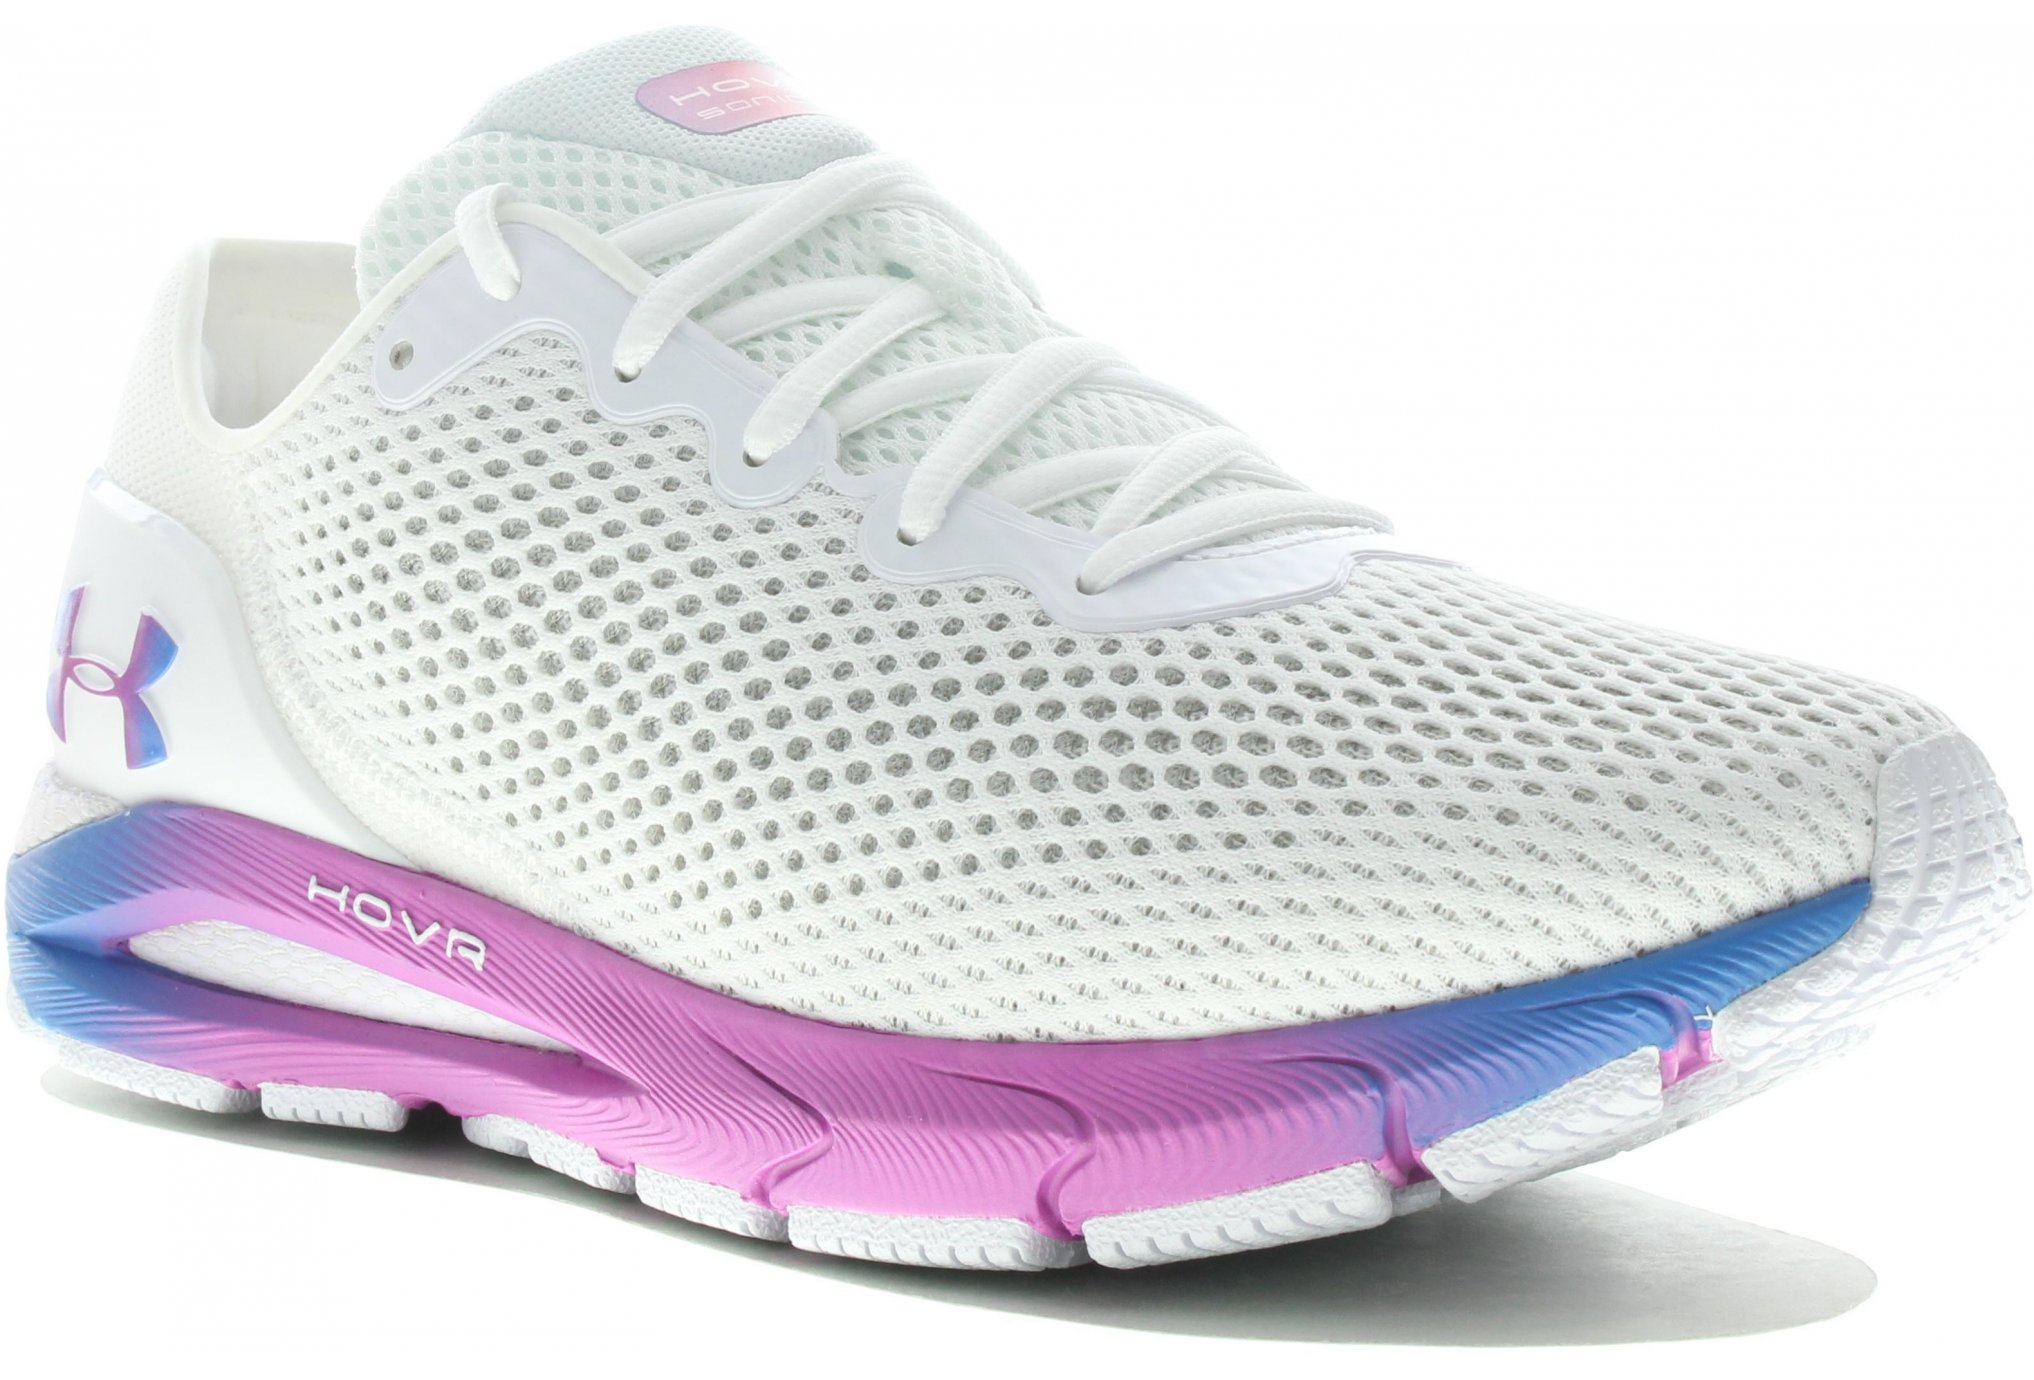 Under Armour HOVR Sonic 4 CLR SFT W Chaussures running femme